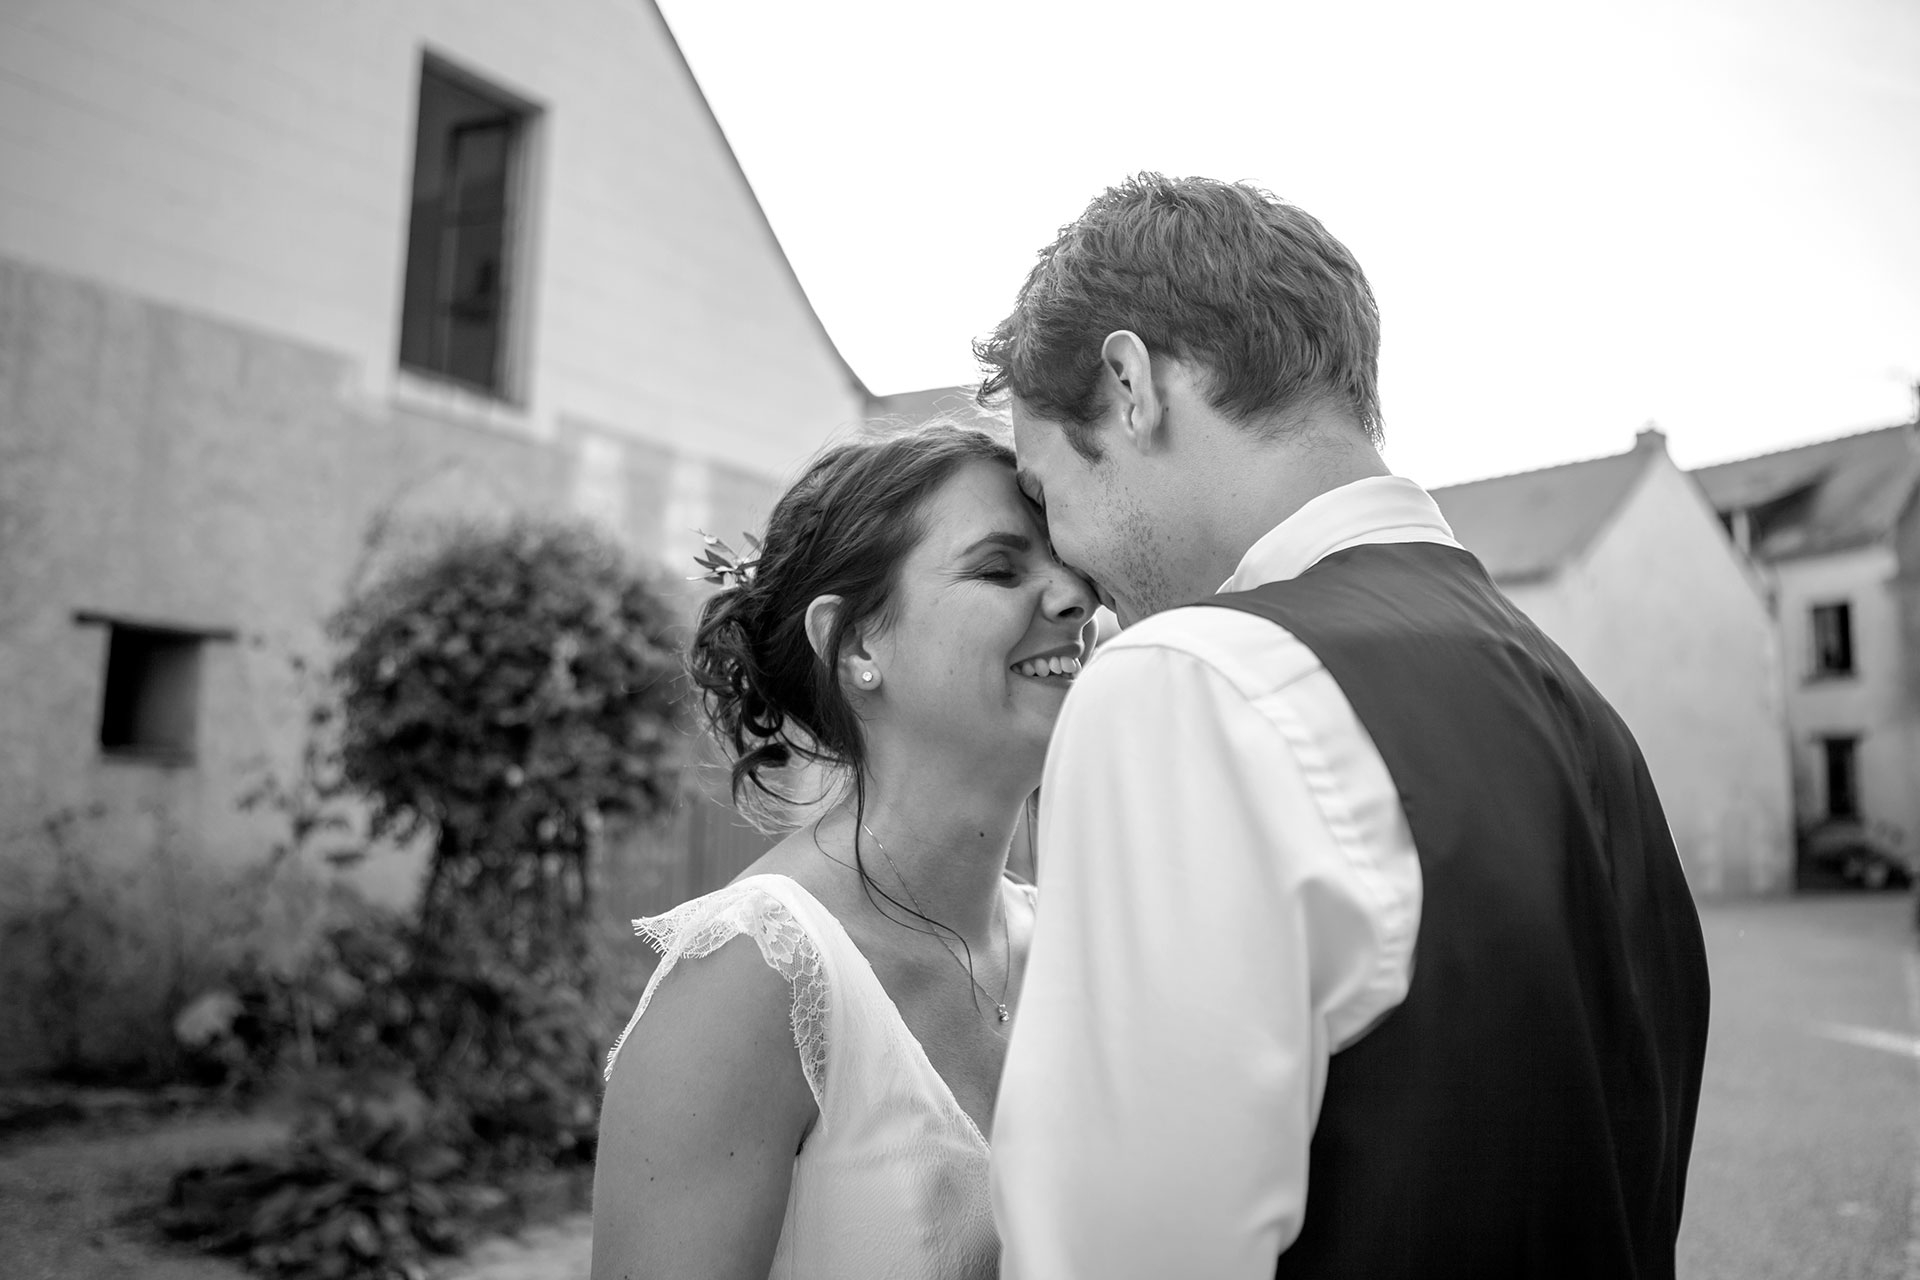 particuliers-evenements-mariage-oui-elise&quentin-68